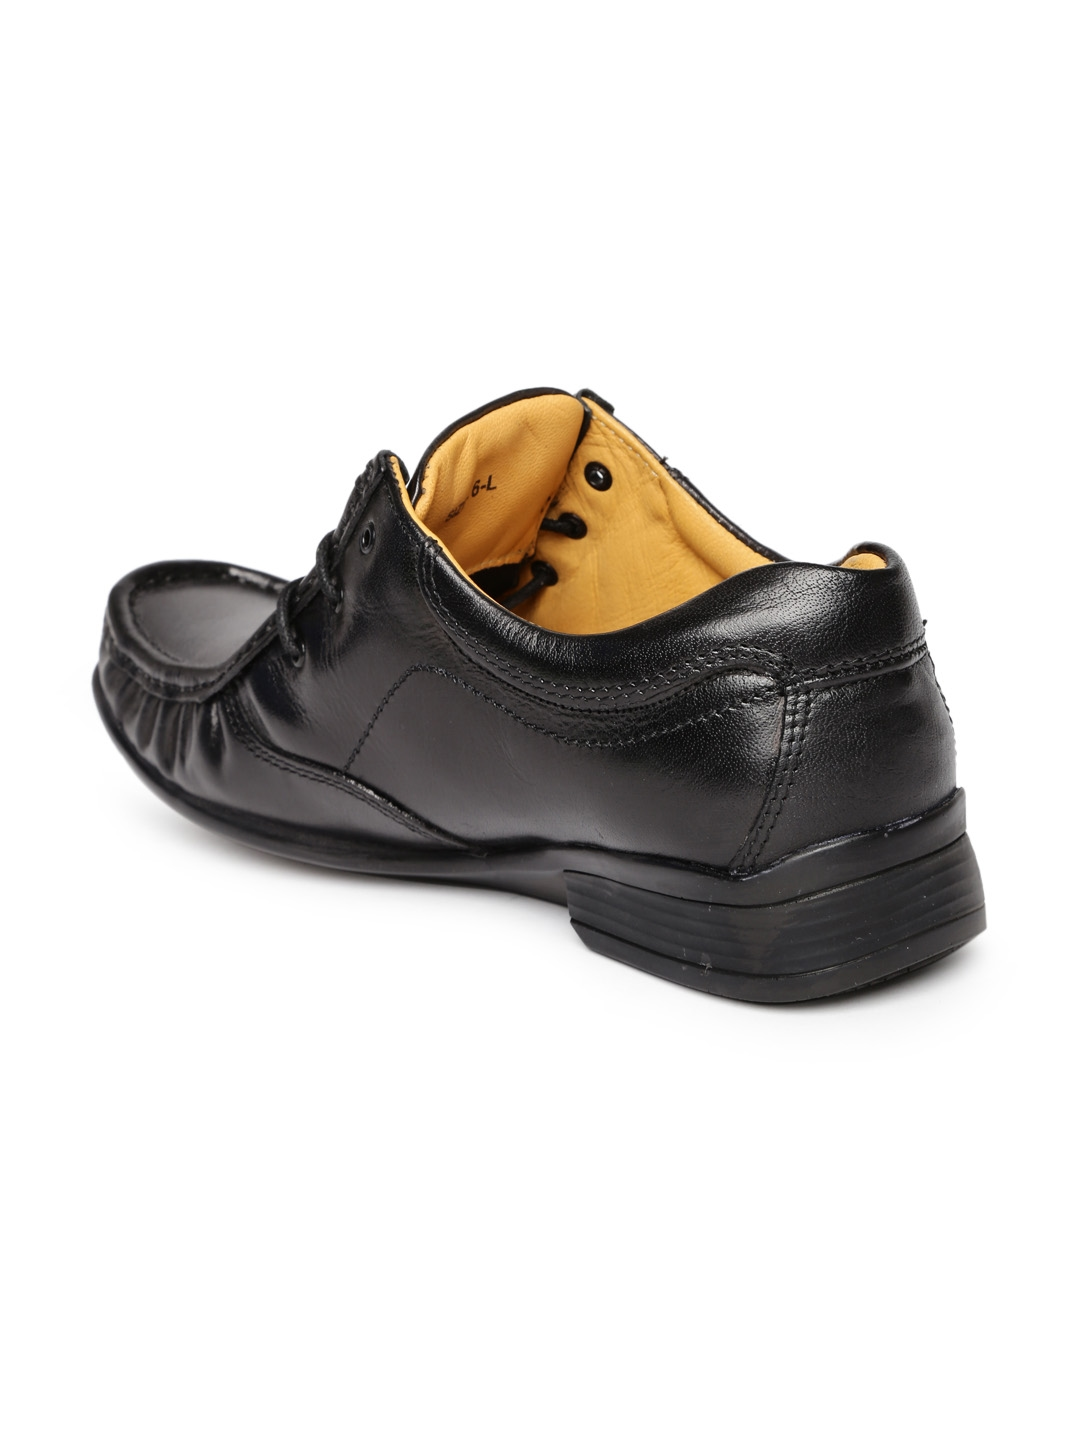 Buy Red Chief Men Black Leather Semiformal Derby Shoes Formal